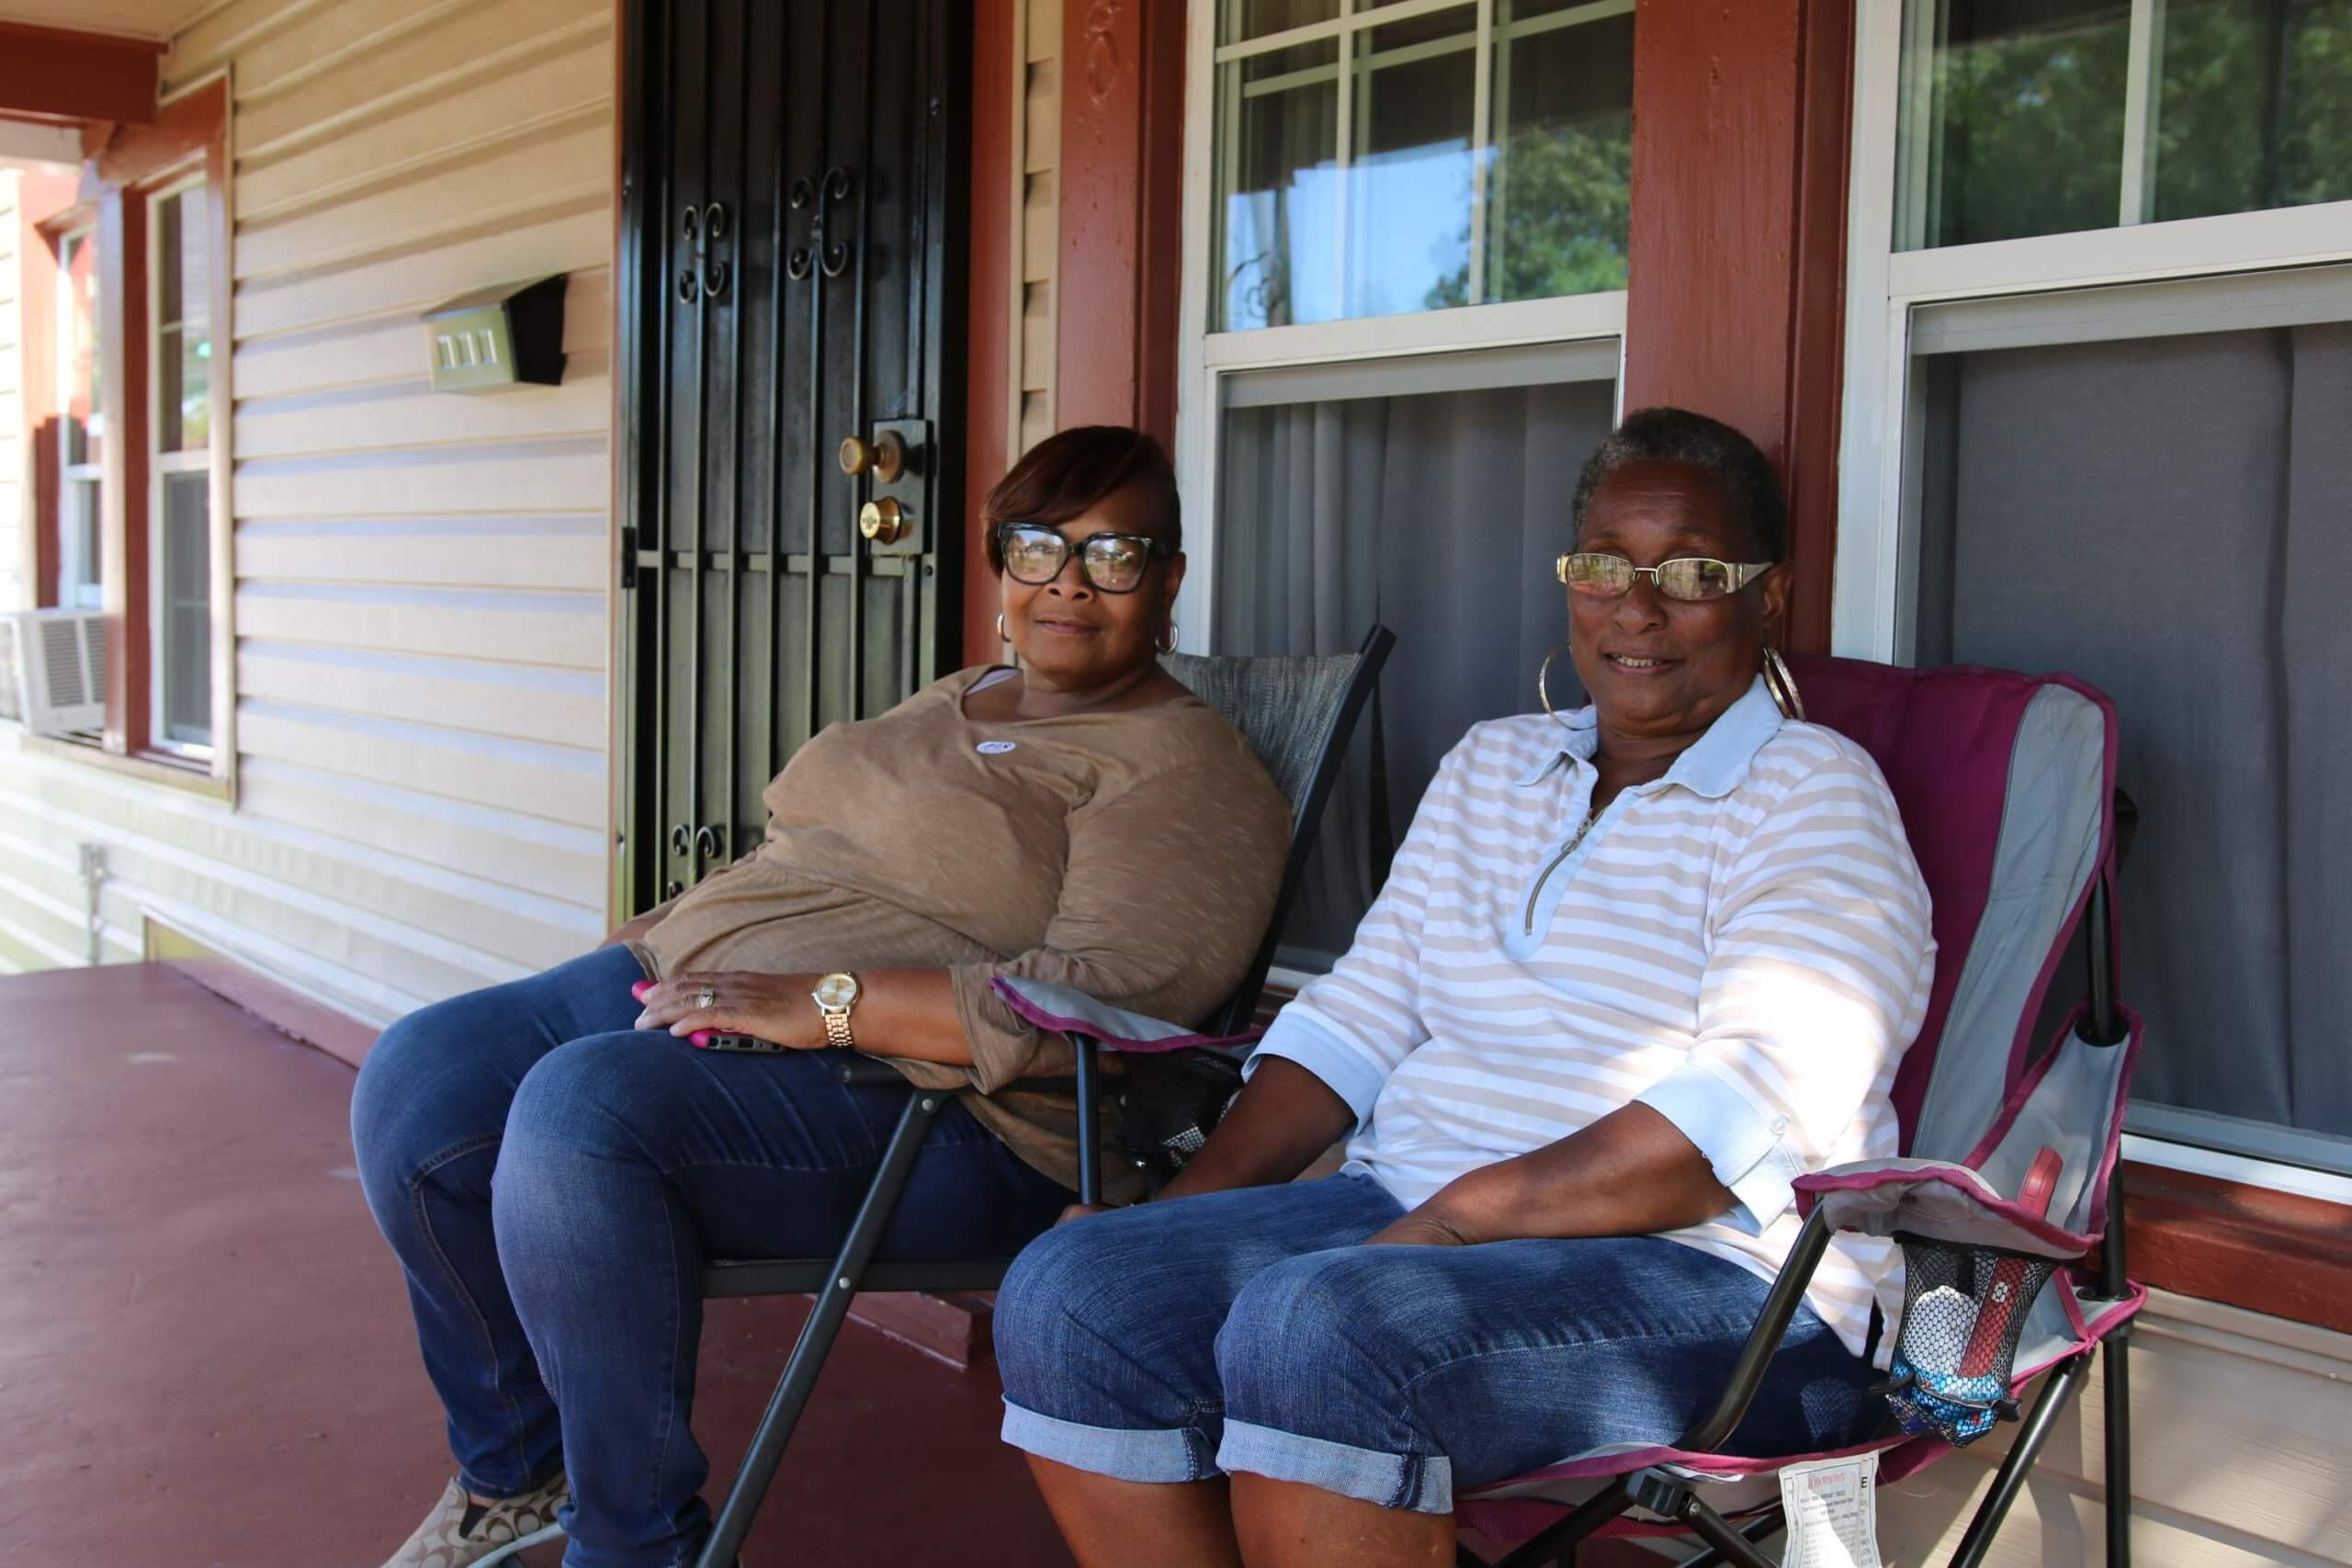 Clarissa Smith, left, a block captain who educates residents and refers homes for lead abatement, with Nyoka Wright, a homeowner who had lead removed from her house. Wright is a great-grandmother who babysits two grandchildren after school and all summer. (Photo courtesy of Houston Health Department)